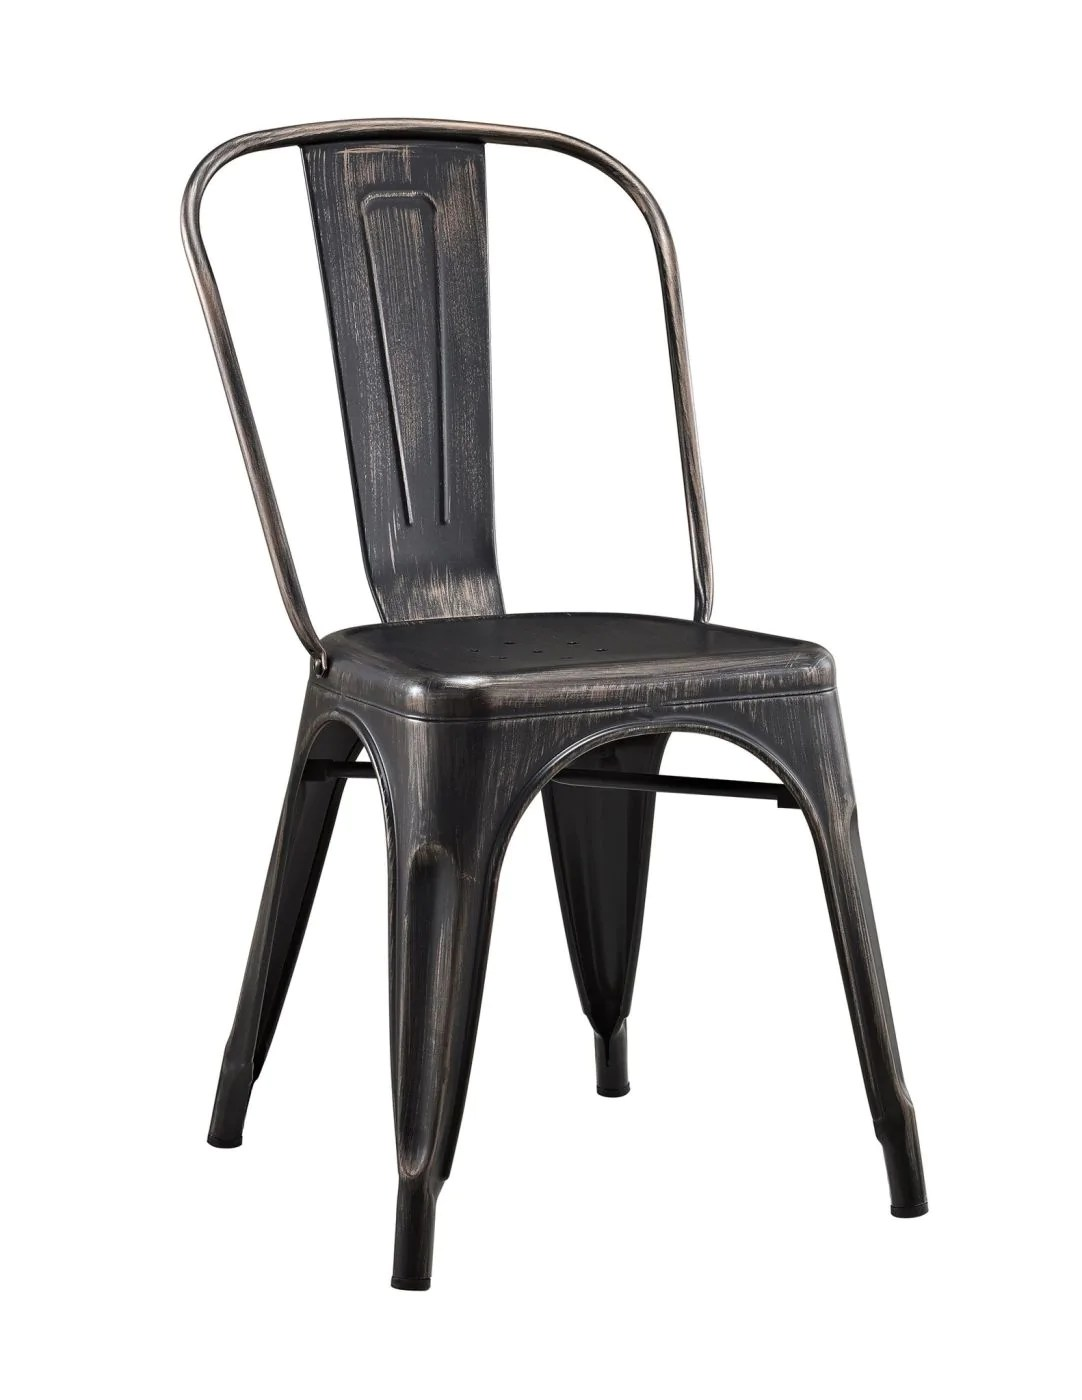 Black Metal Kitchen Chairs At Contemporary Furniture Warehouse